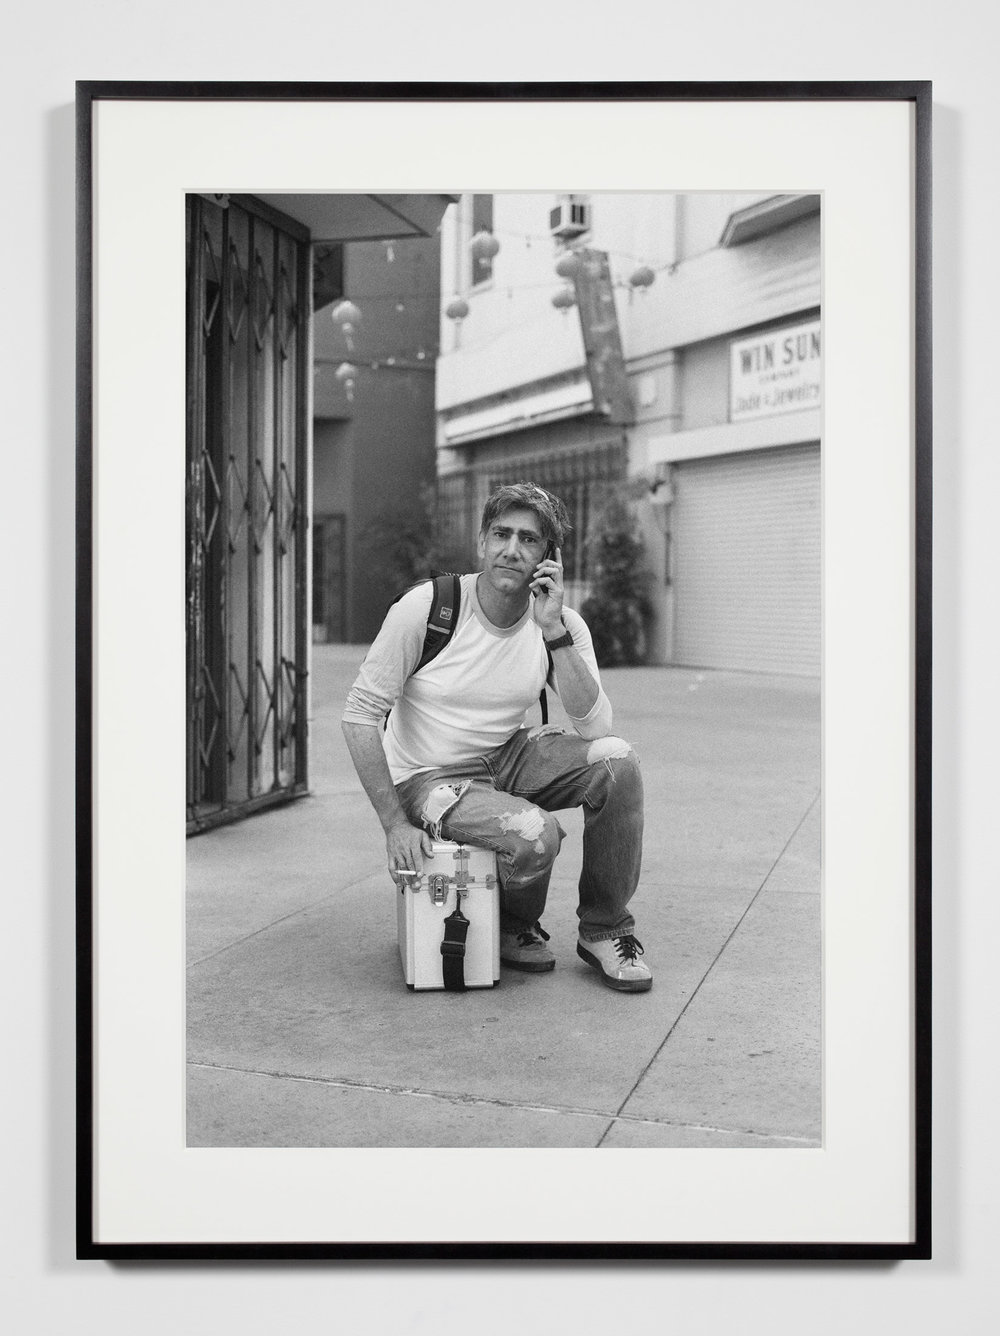 Gallery Preparator, Los Angeles, California, July 26, 2008   2011  Epson Ultrachrome K3 archival ink jet print on Hahnemühle Photo Rag paper  36 3/8 x 26 3/8 inches   Industrial Portraits, 2008–    A Diagram of Forces, 2011